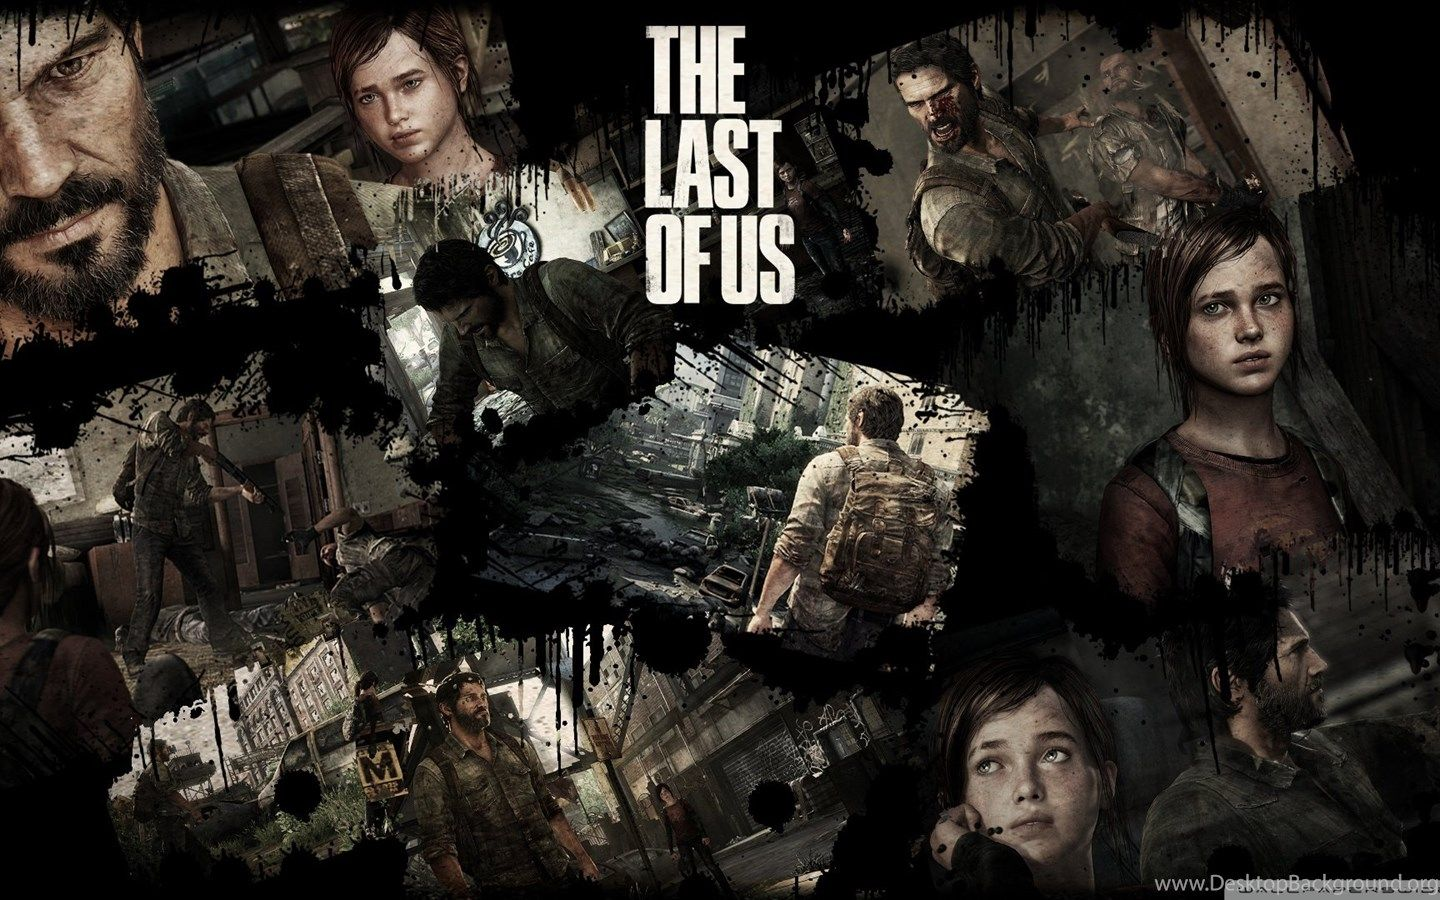 Fondo de pantalla de The Last of Us 1440x900